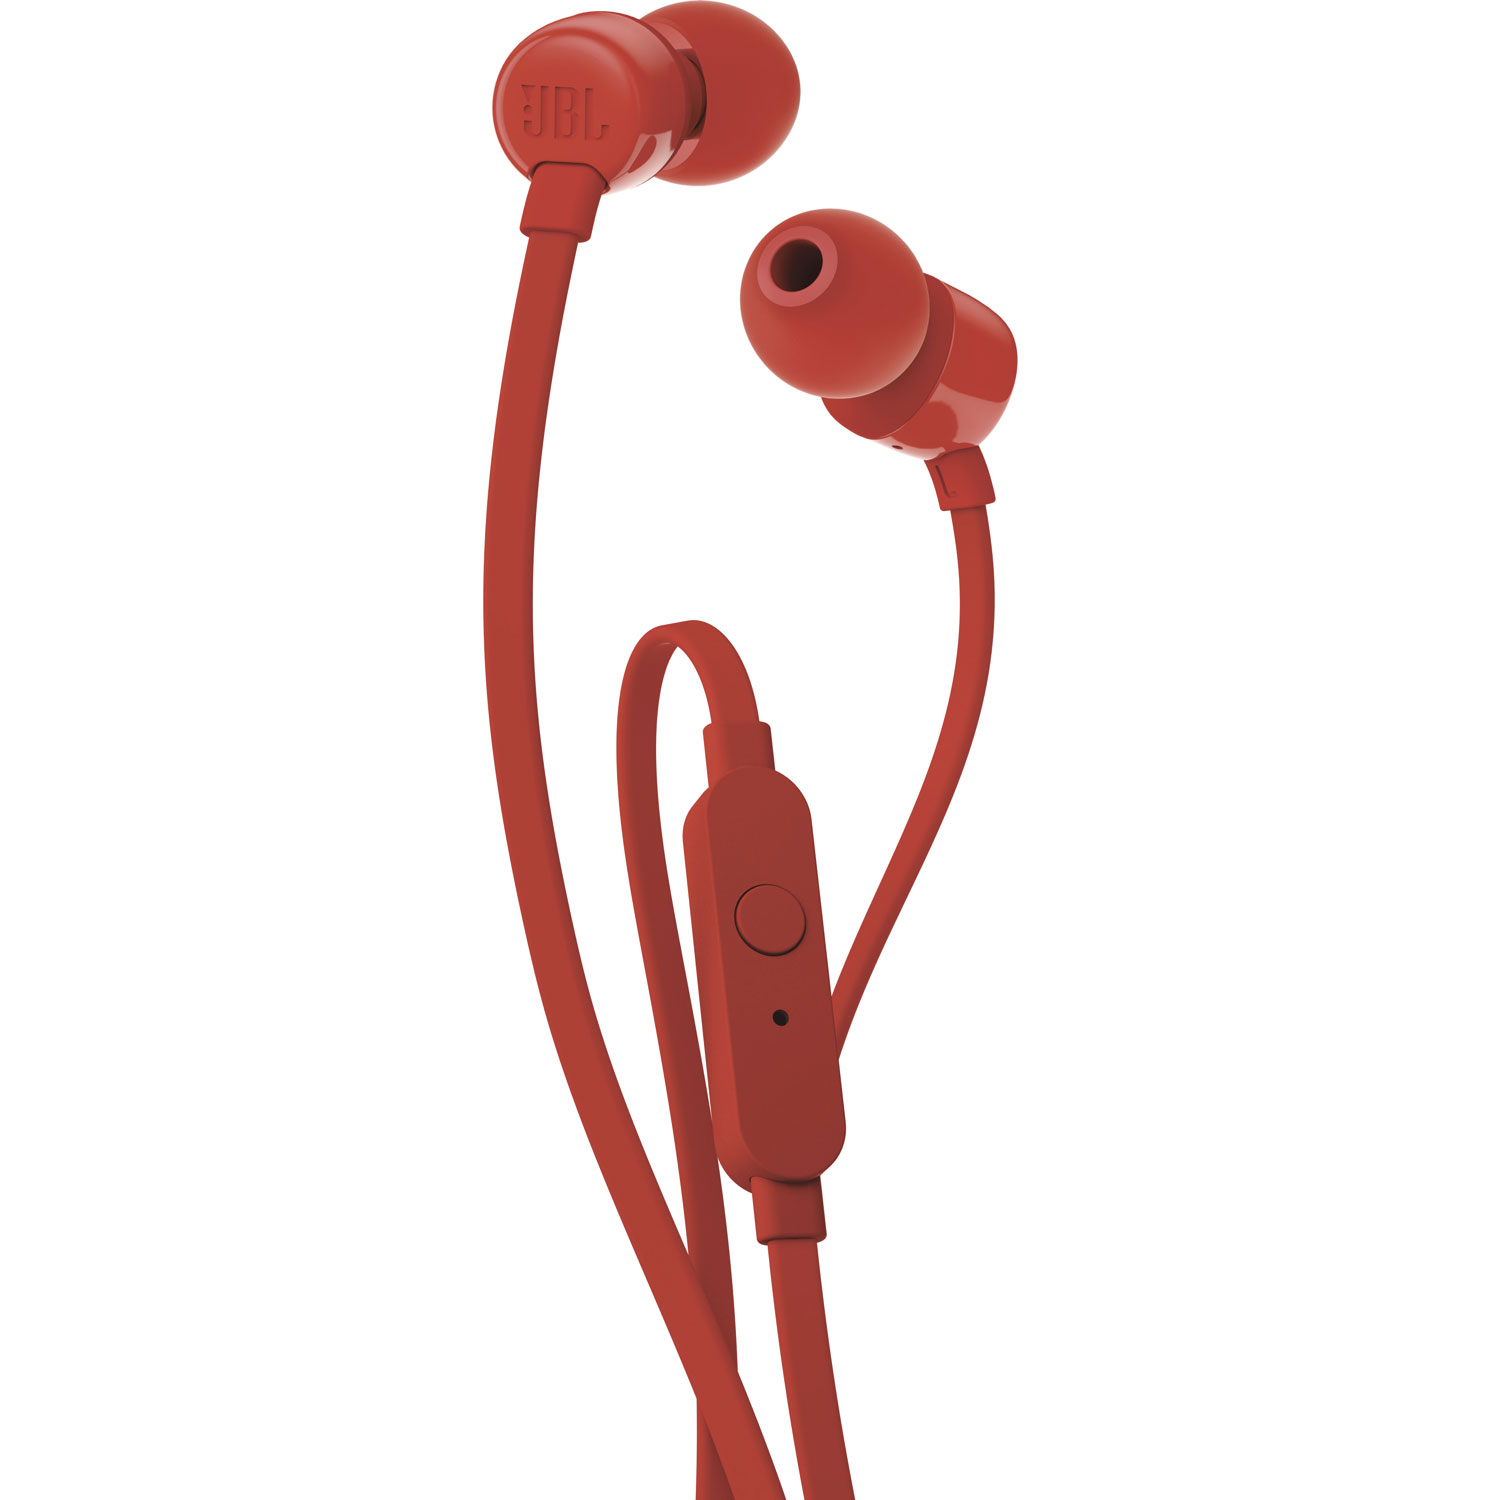 JBL T110 In Ear Headphones Red